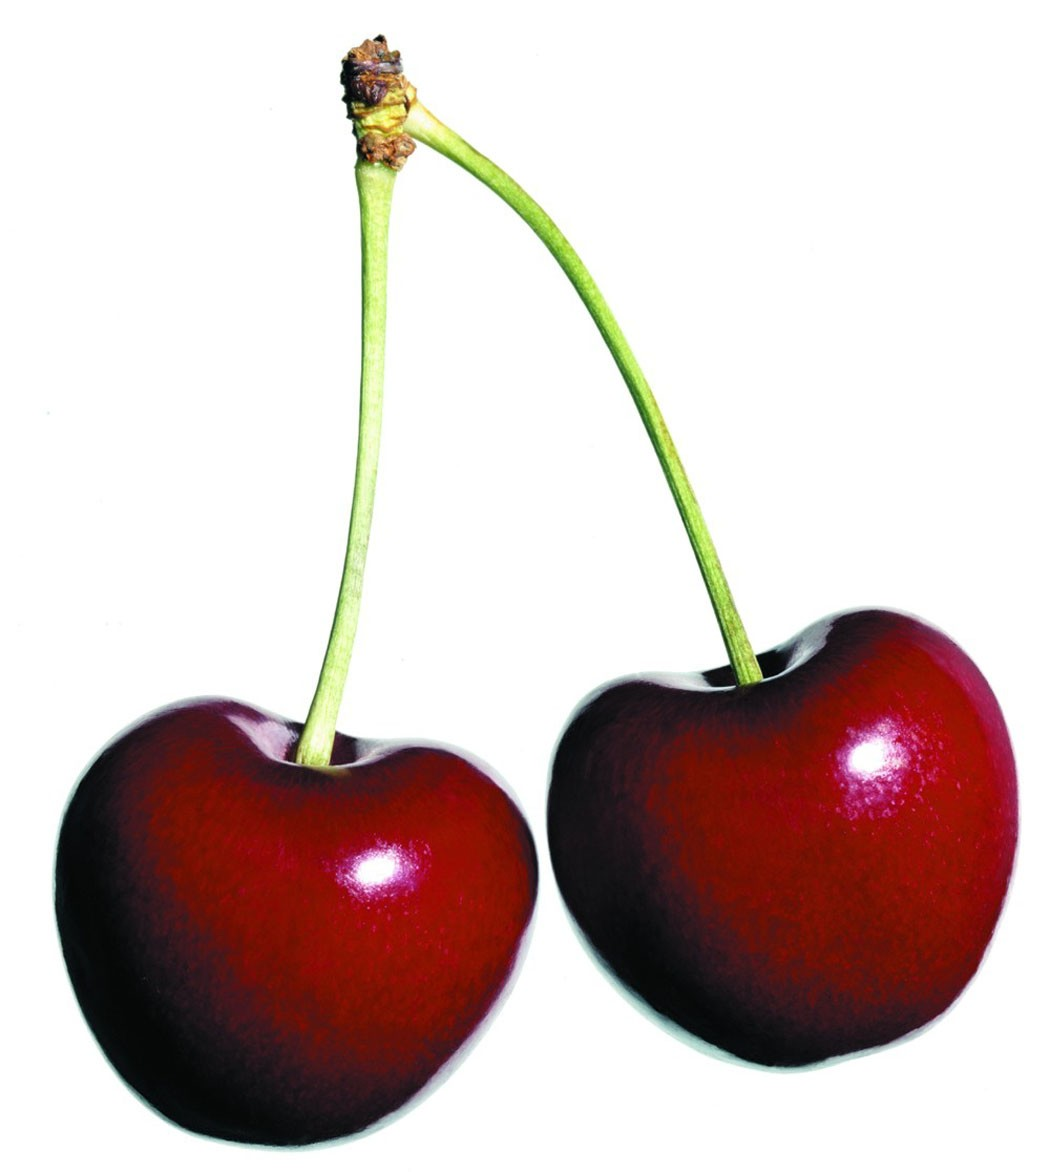 Sweet Cherry Wallpaper 456.28 Kb